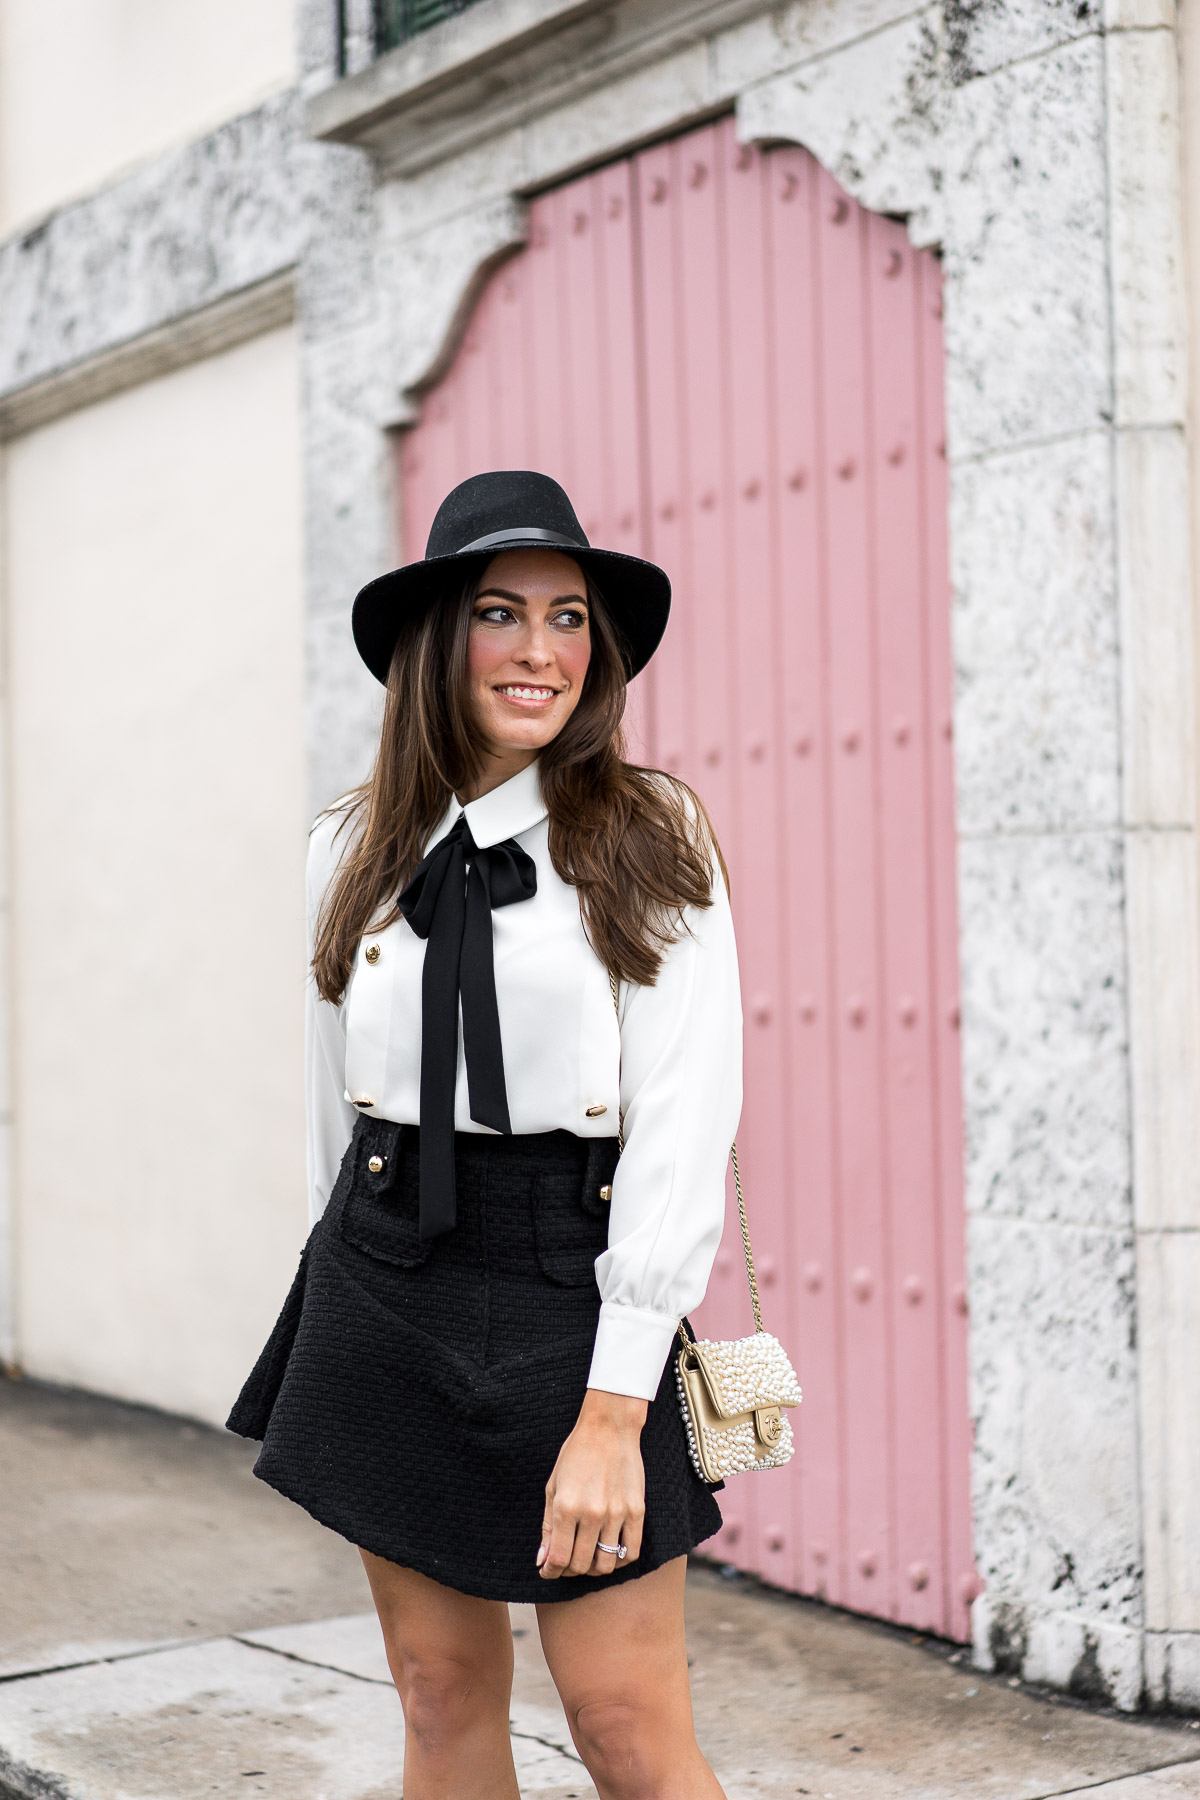 Storets offers affordable fashion like this tweed mini skirt and bow tie shirt worn by blogger Amanda from AGlamLifestyle